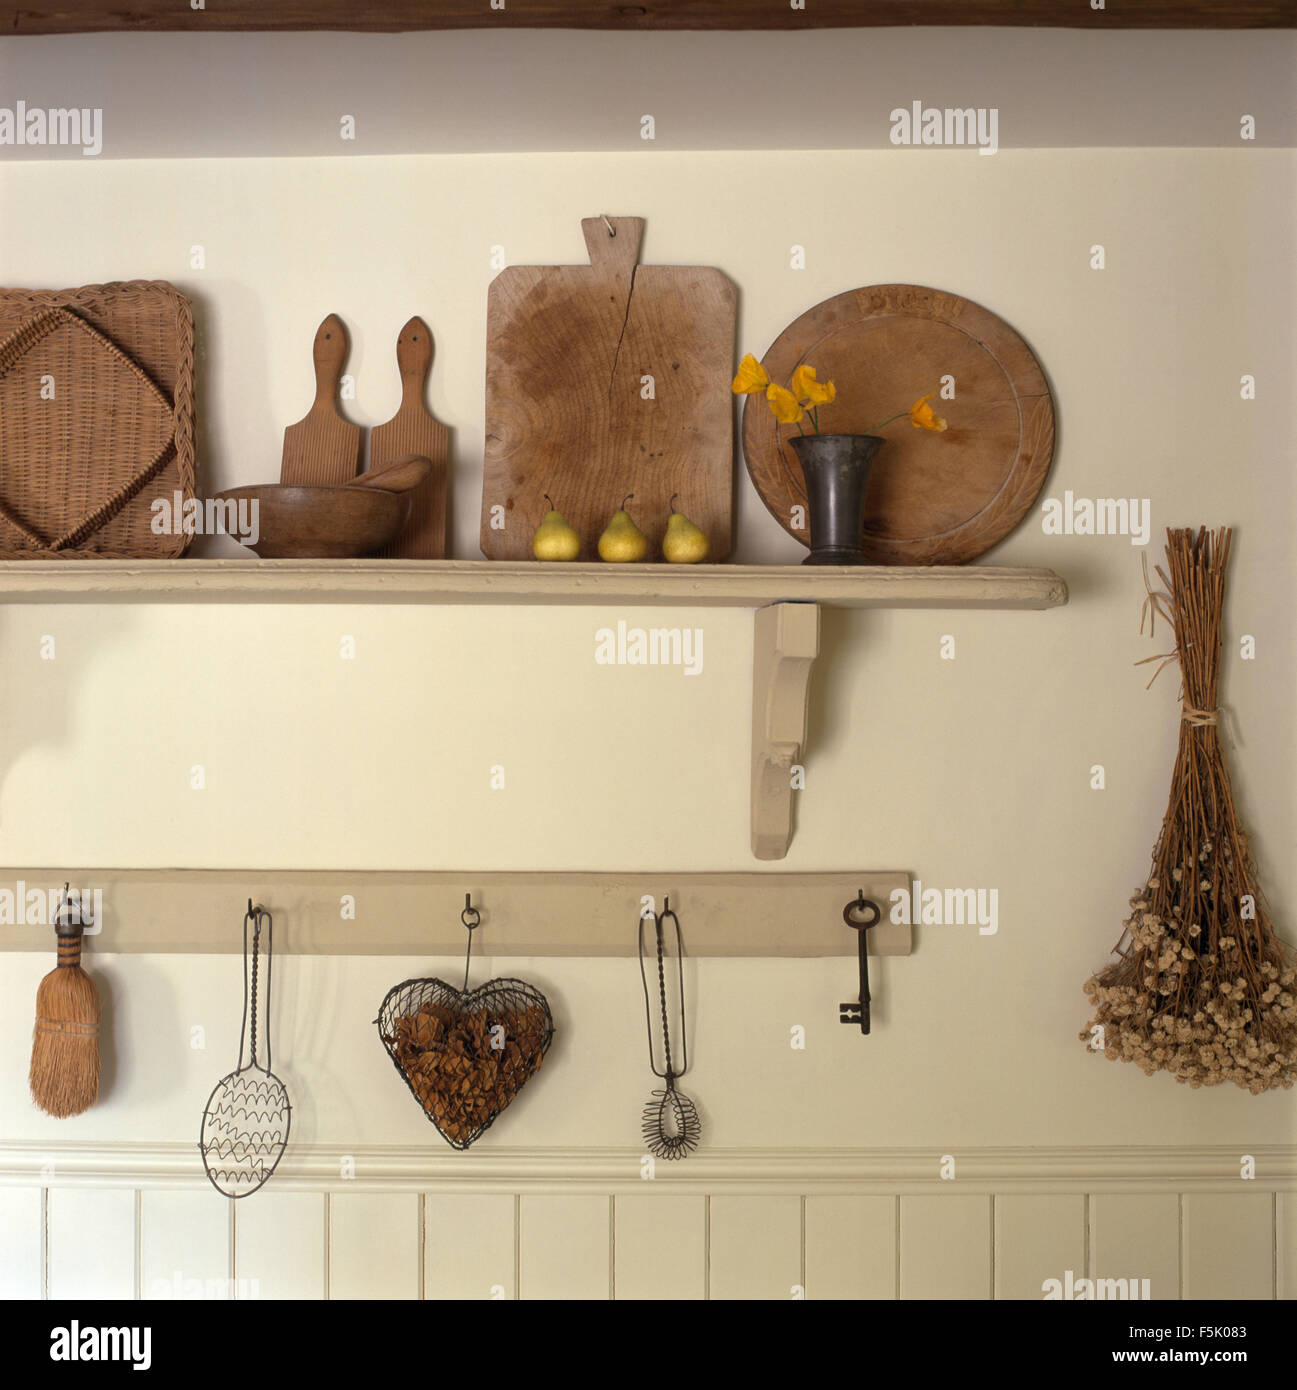 Shaker Style Kitchen Wooden Breadboards On Simple Shelves In Shaker Style Kitchen Stock